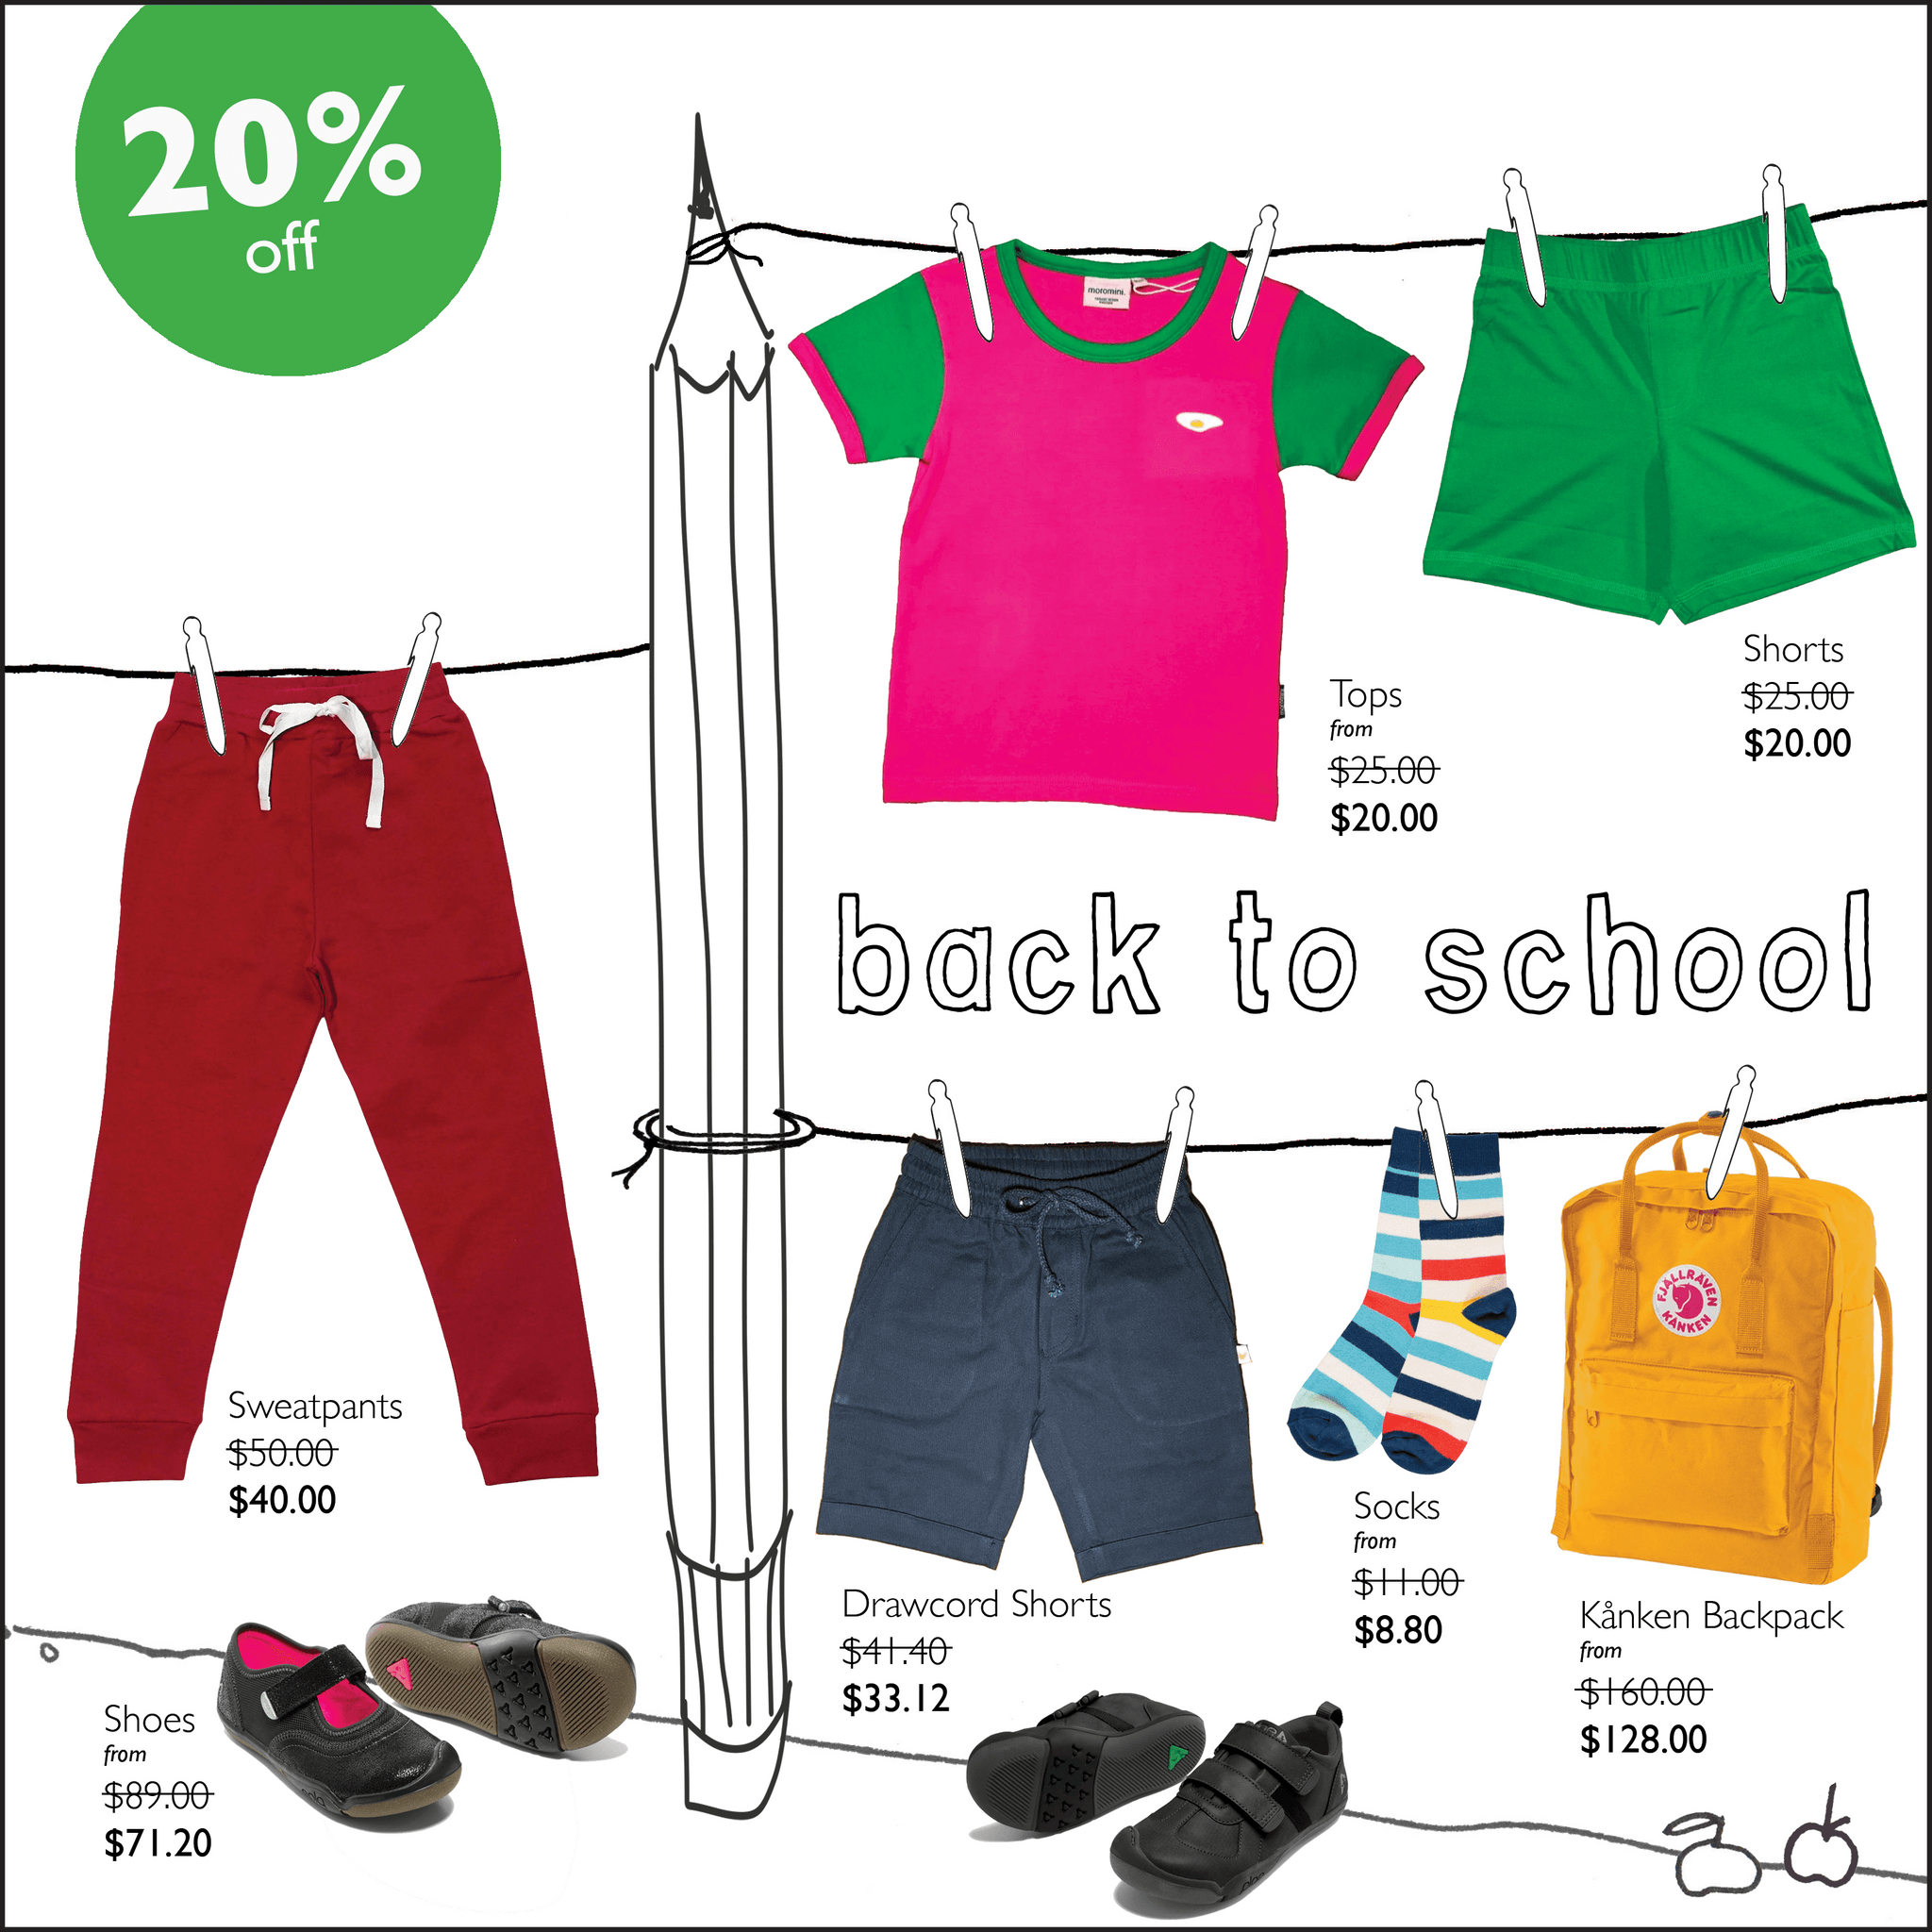 Our back to school sale offers 20% off a selected range of quality shoes, backpacks and clothing - all the things you need to kick off a new year at school